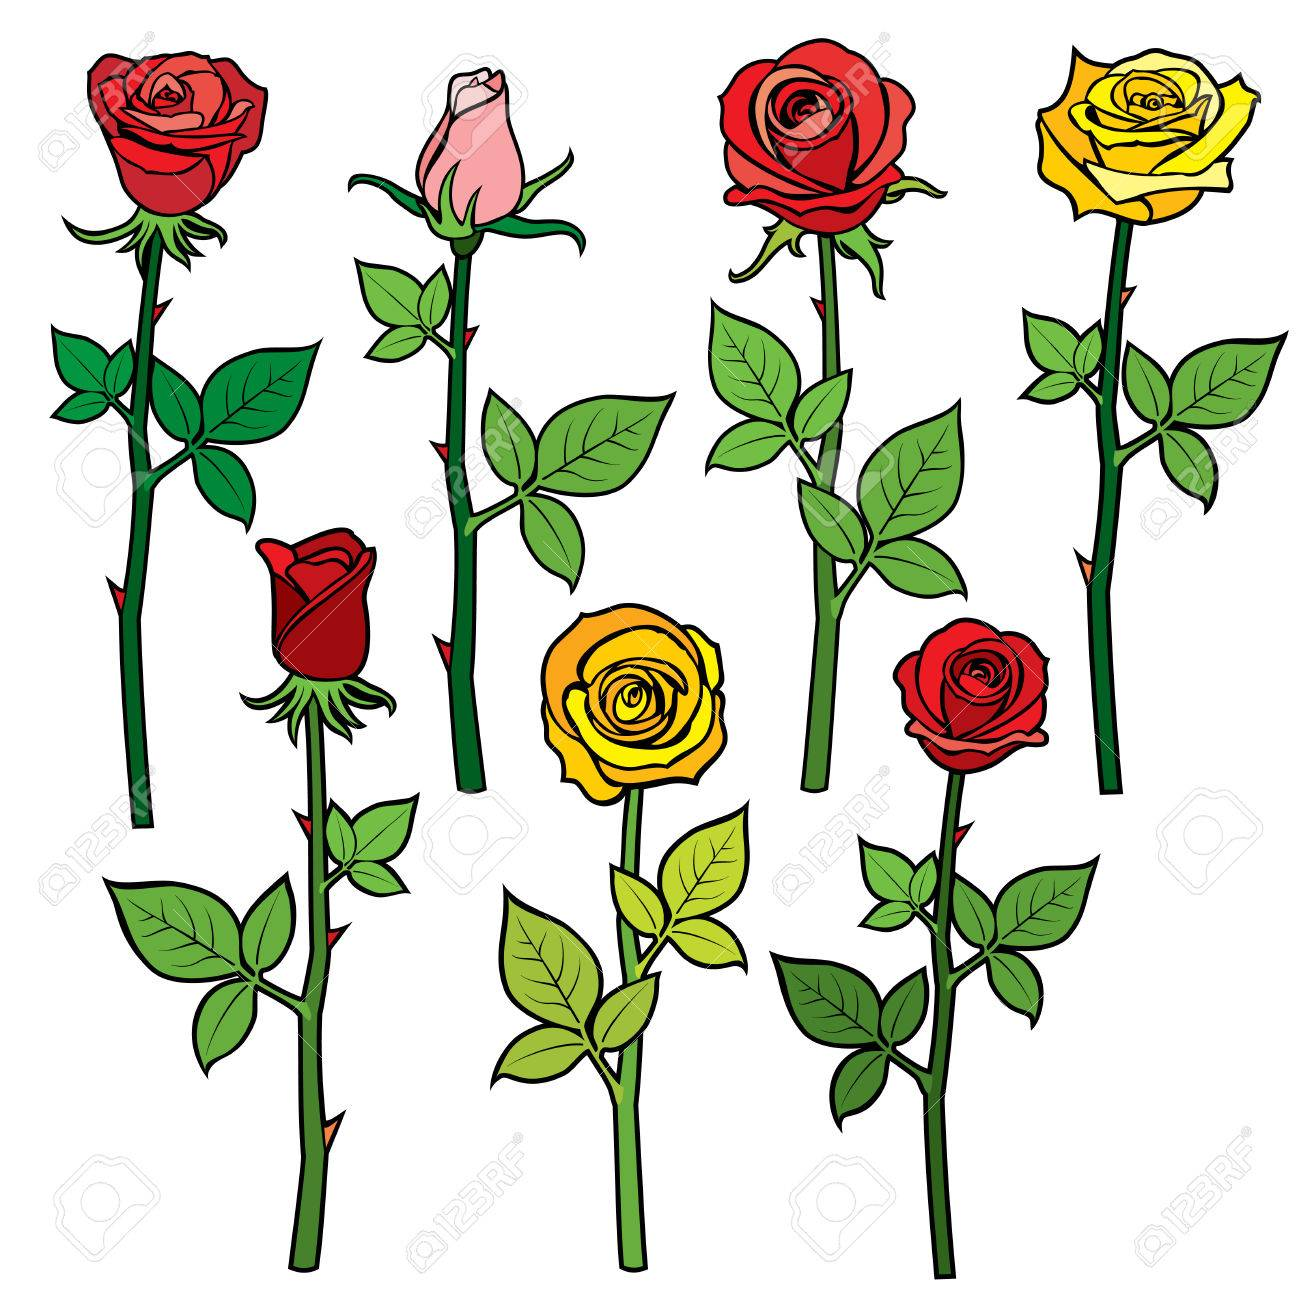 Roses with flower buds isolated on white cartoon vector roses with flower buds isolated on white cartoon vector illustration colored flowers rose yellow mightylinksfo